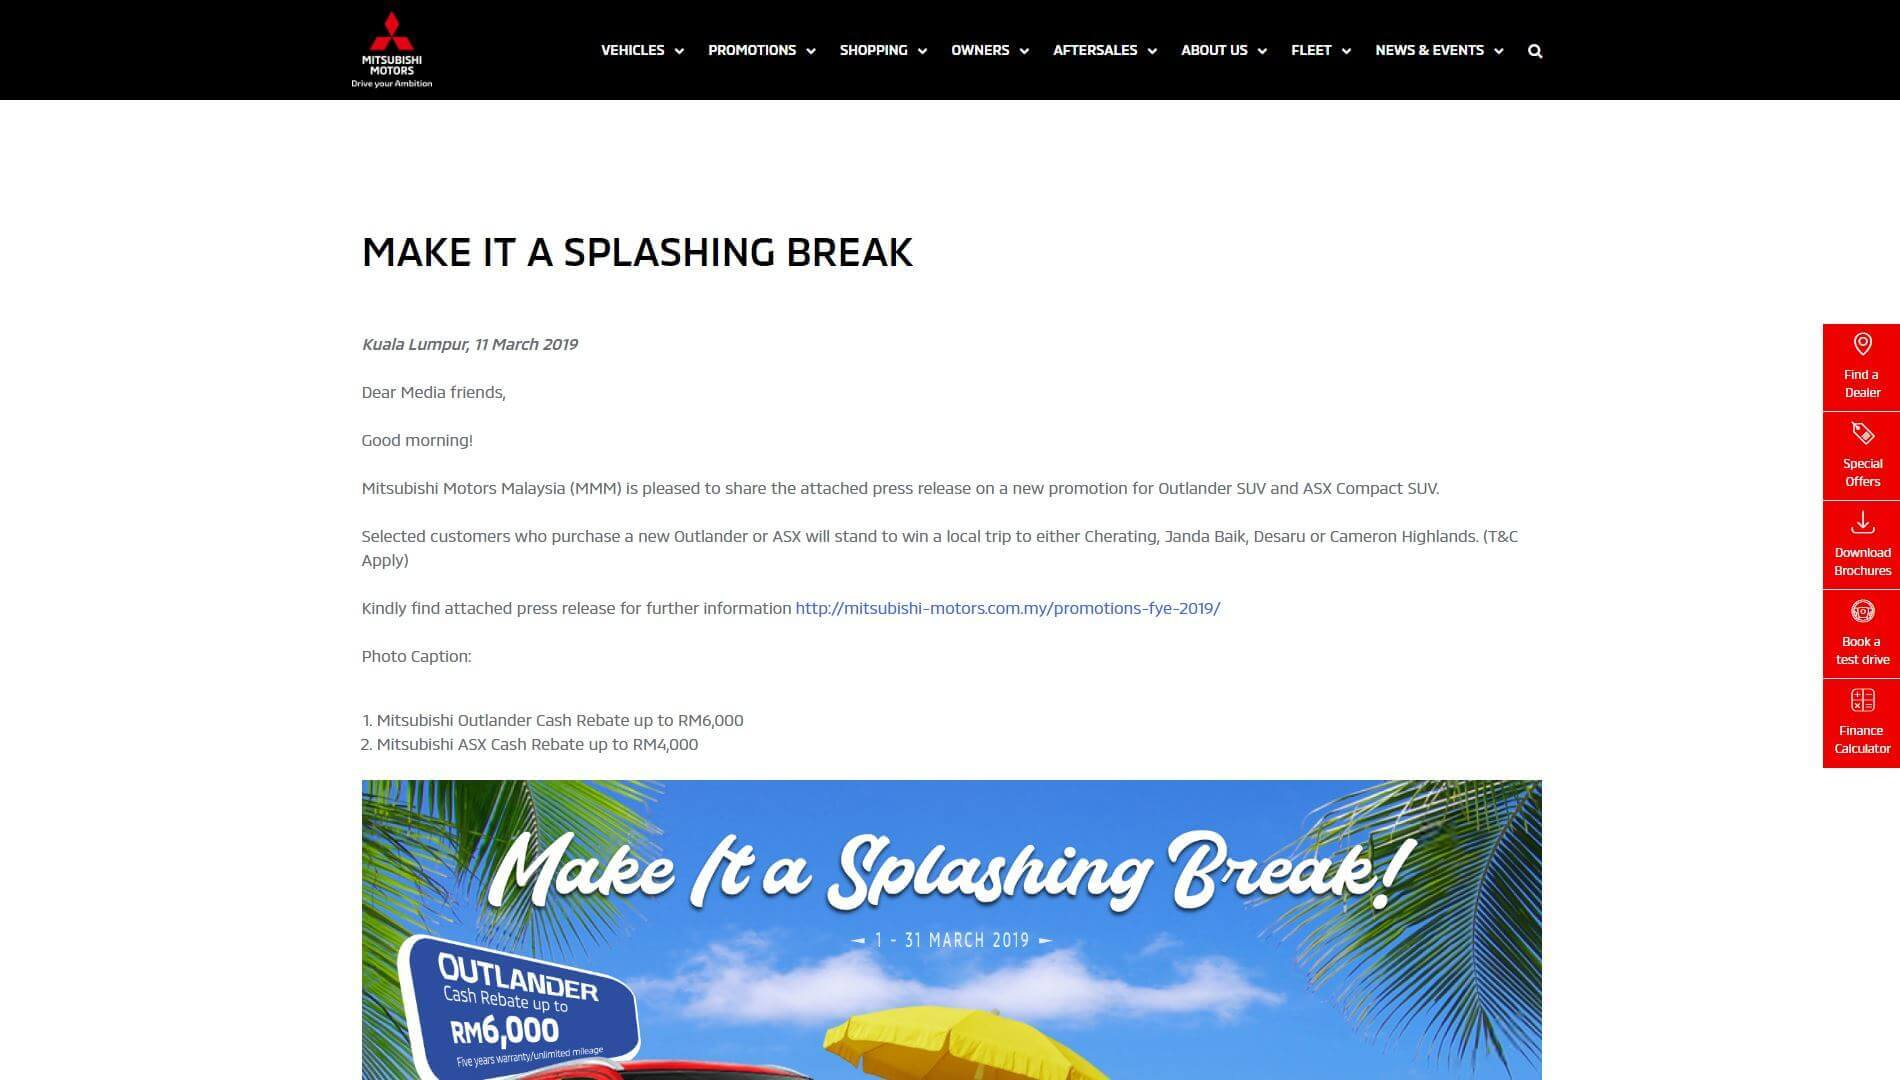 Splashing Break Promotion Outlander and ASX | Mitsubishi Motors Malaysia